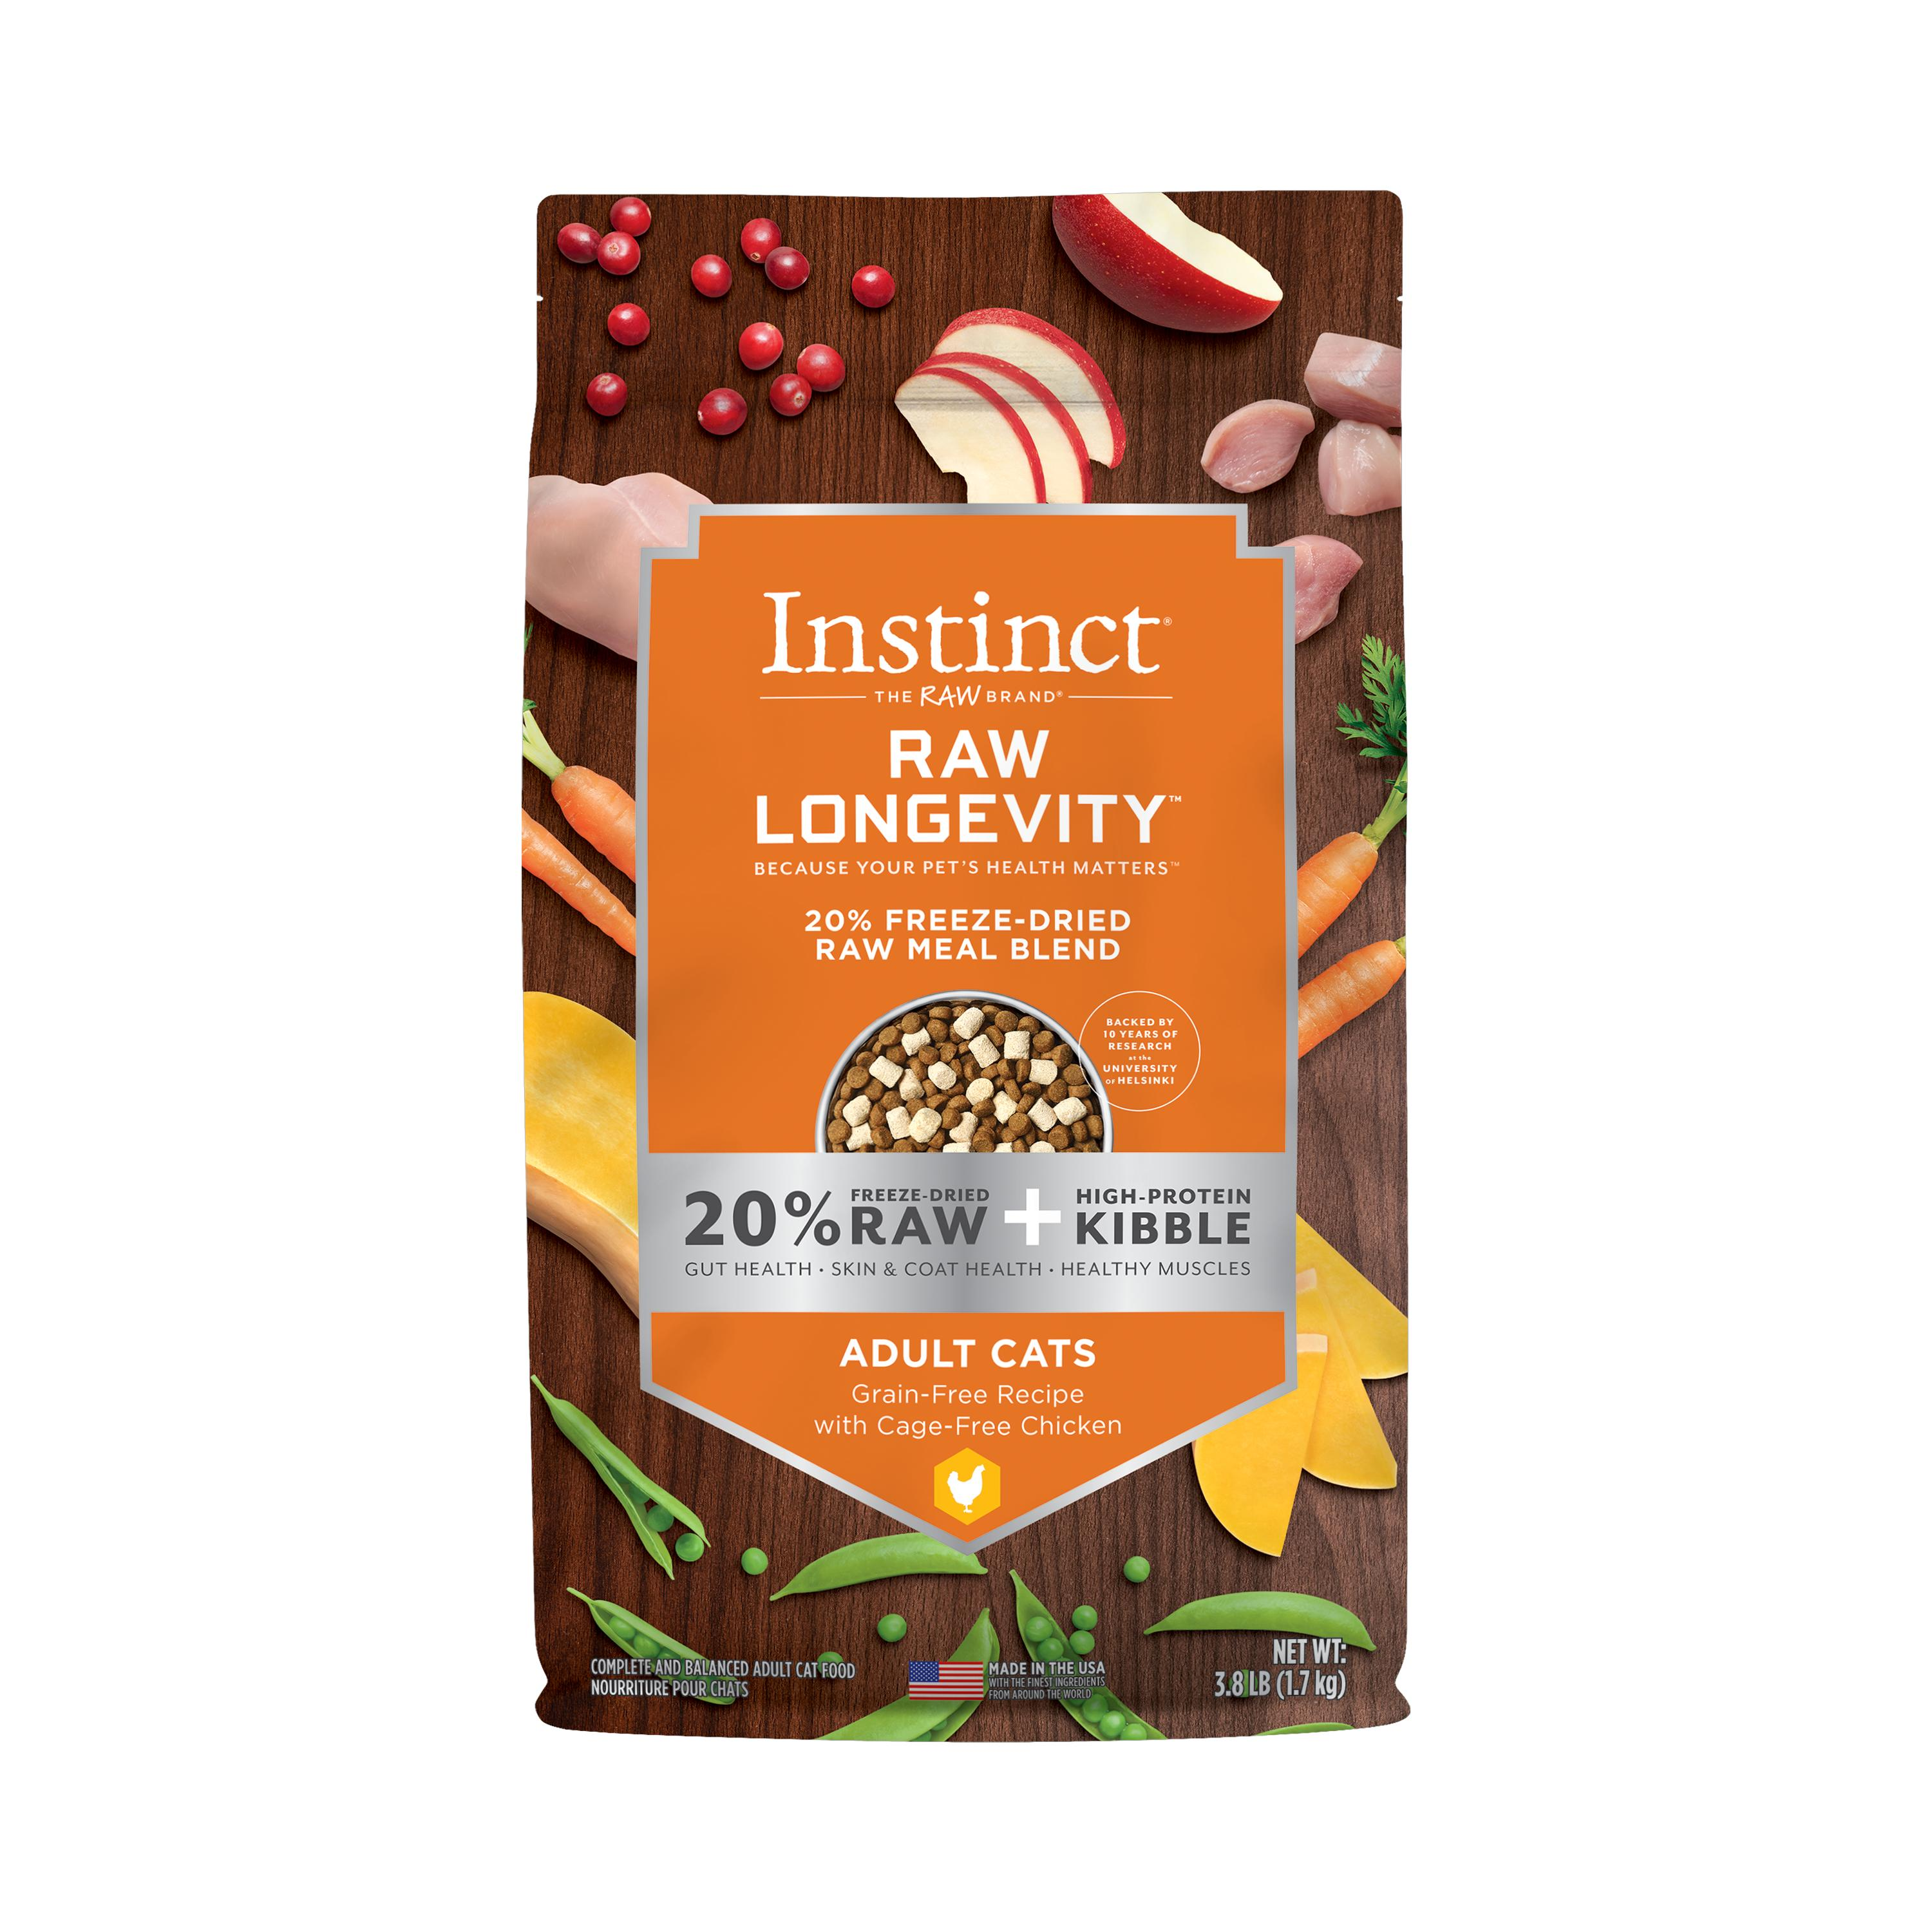 Instinct by Nature's Variety Raw Longevity Grain-Free Recipe with Cage-Free Chicken 20% Freeze-Dried Cat Food, 1.5-lb